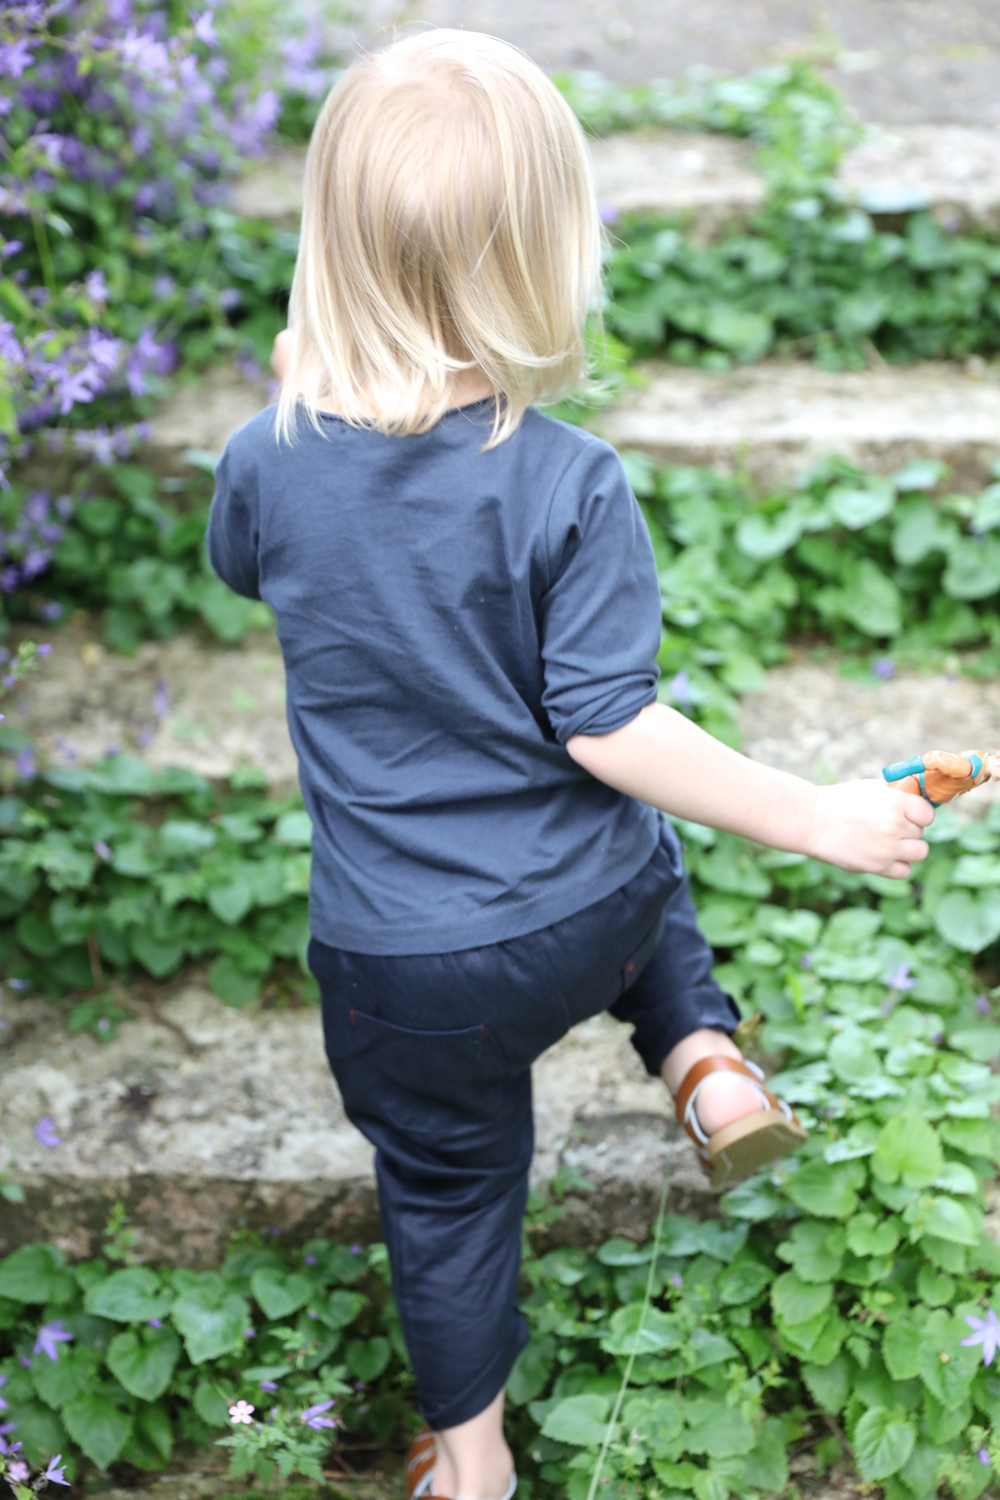 TOddler_Grain_de_chic_clothes